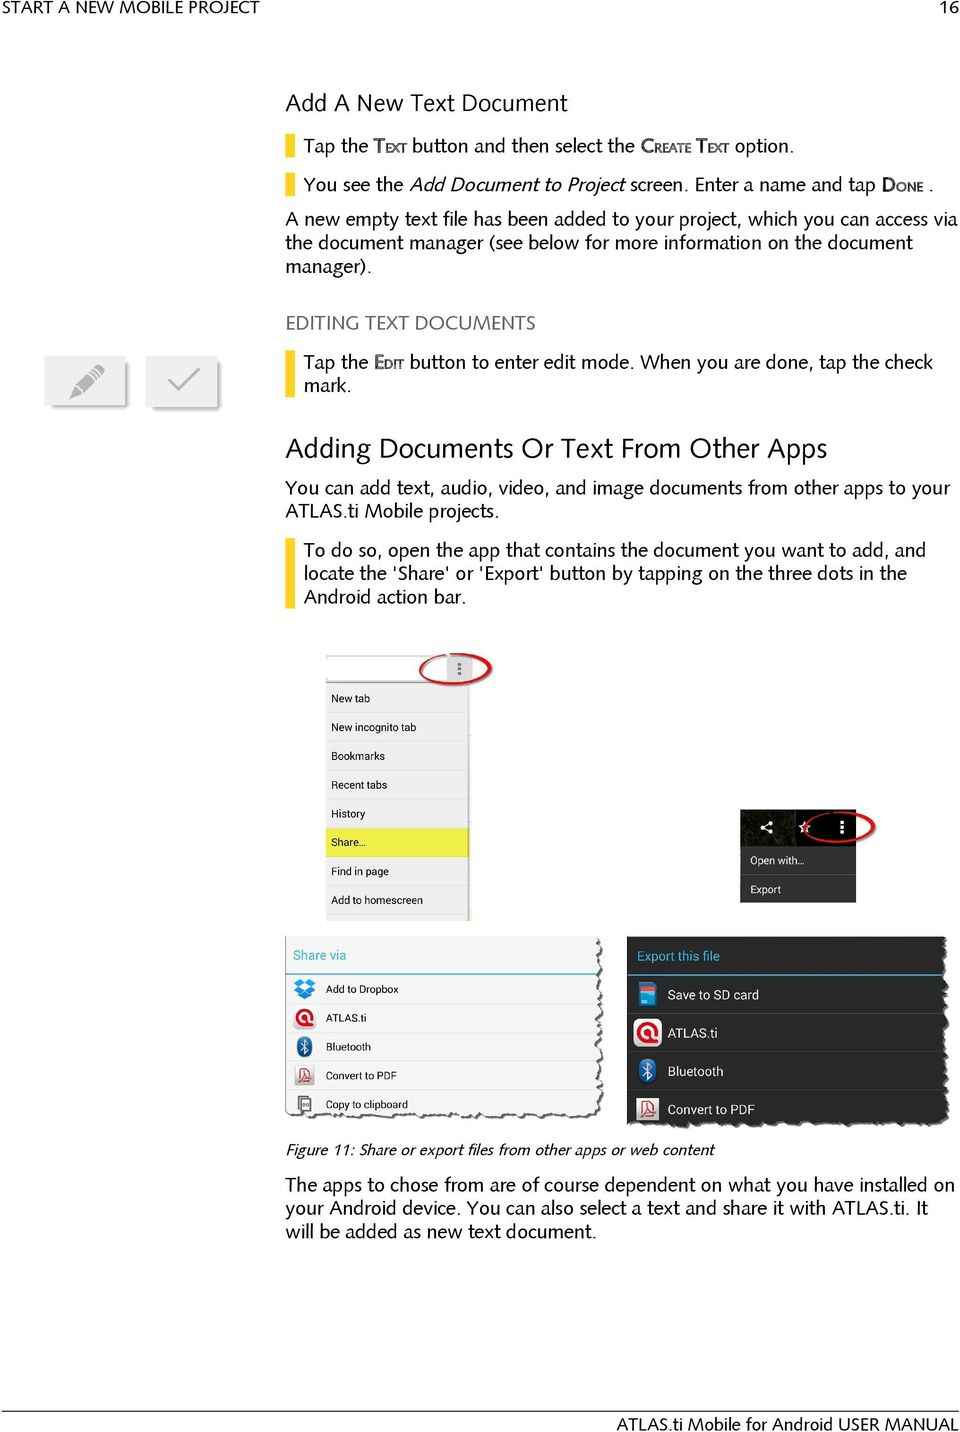 EDITING TEXT DOCUMENTS Tap the EDIT button to enter edit mode. When you are done, tap the check mark.